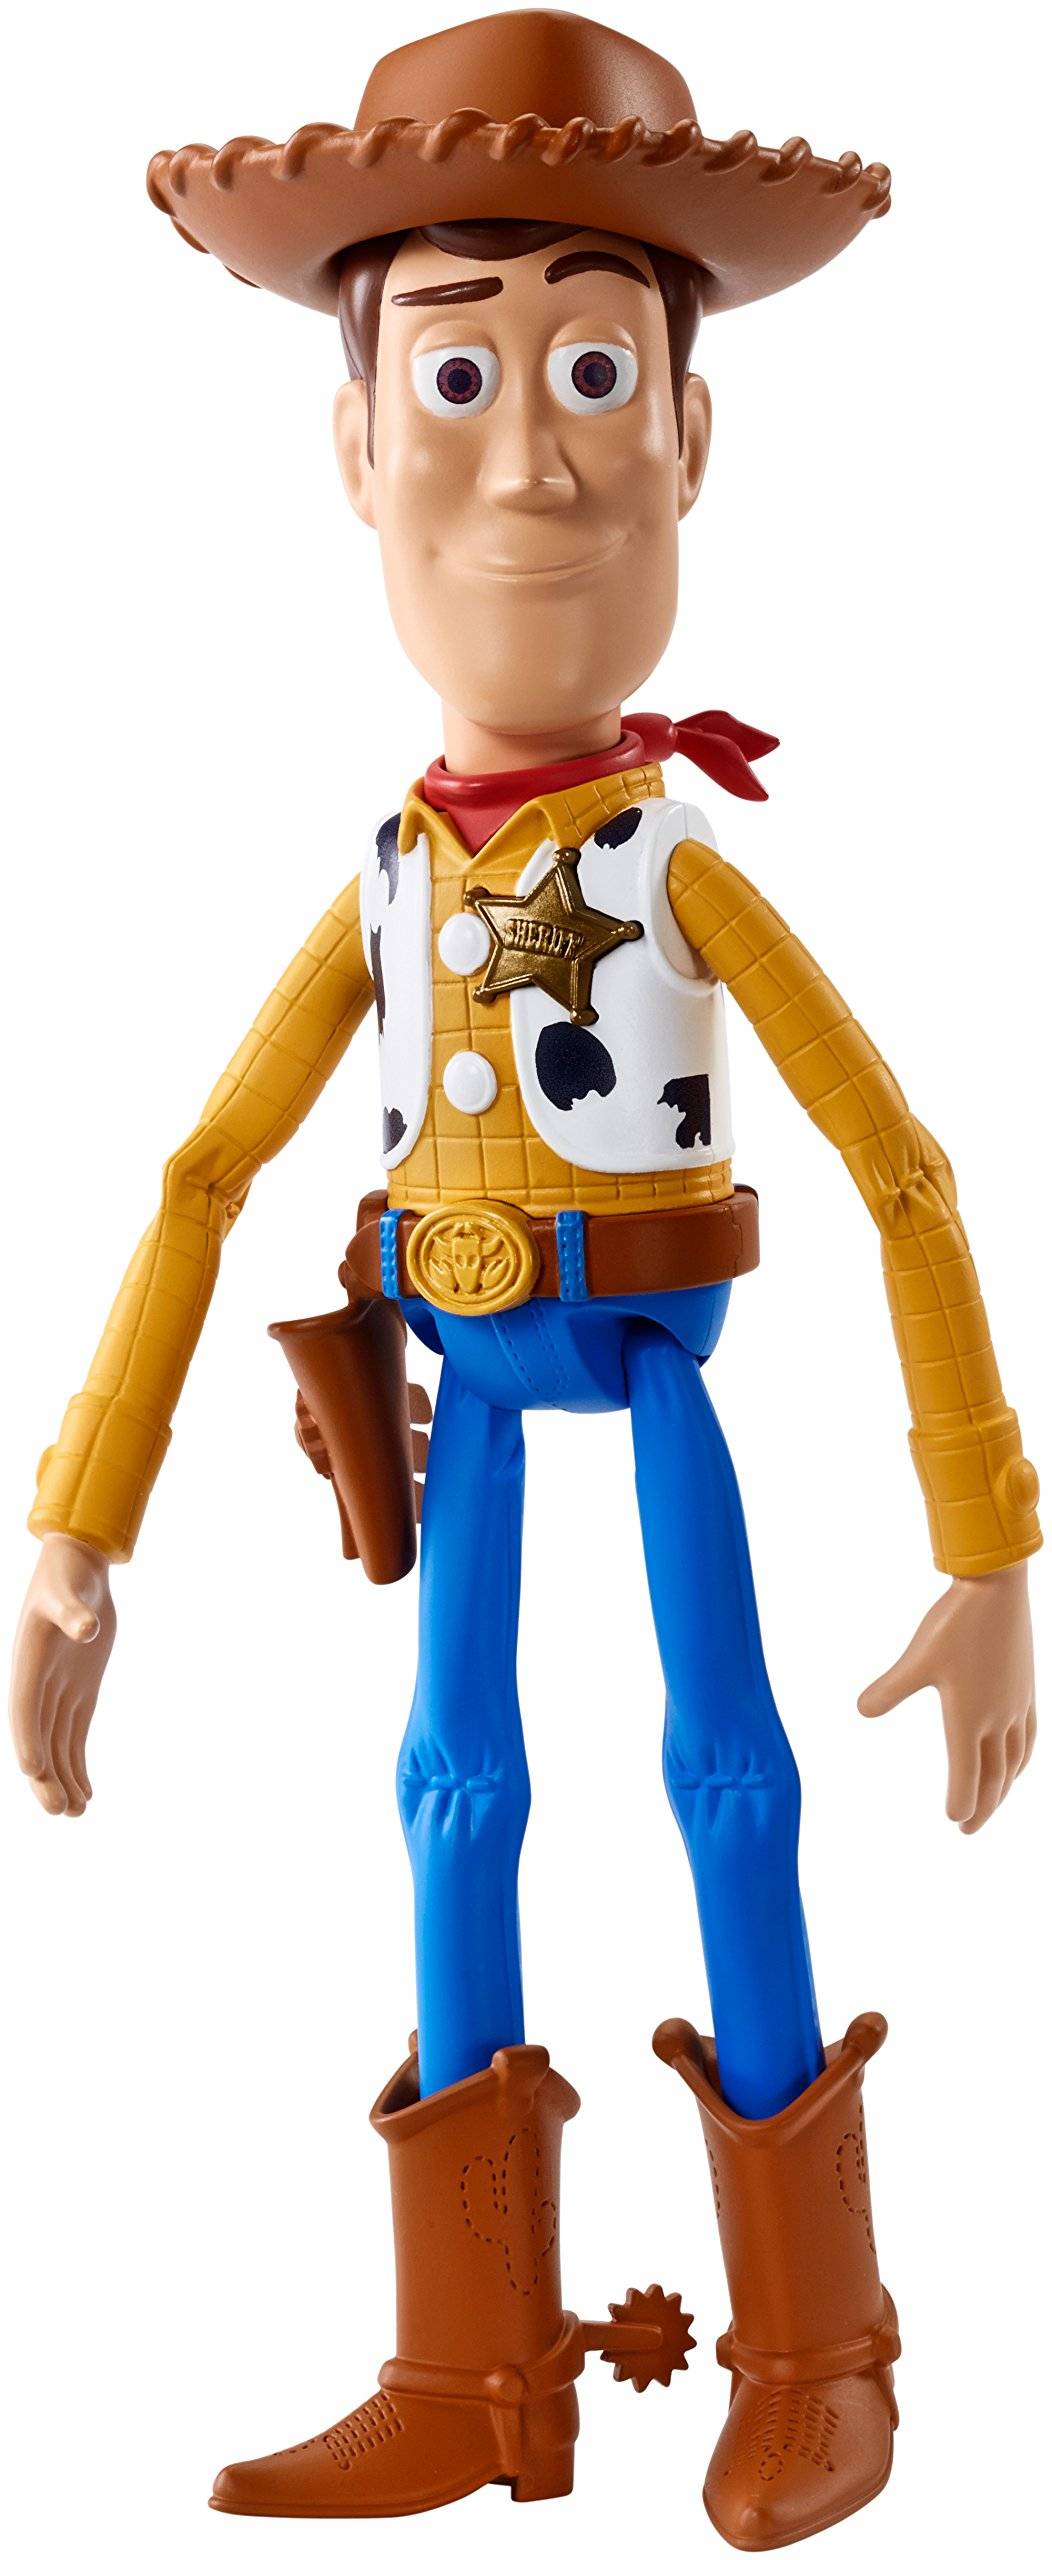 Toy Story Toys : The gallery for gt toy story talking woody doll